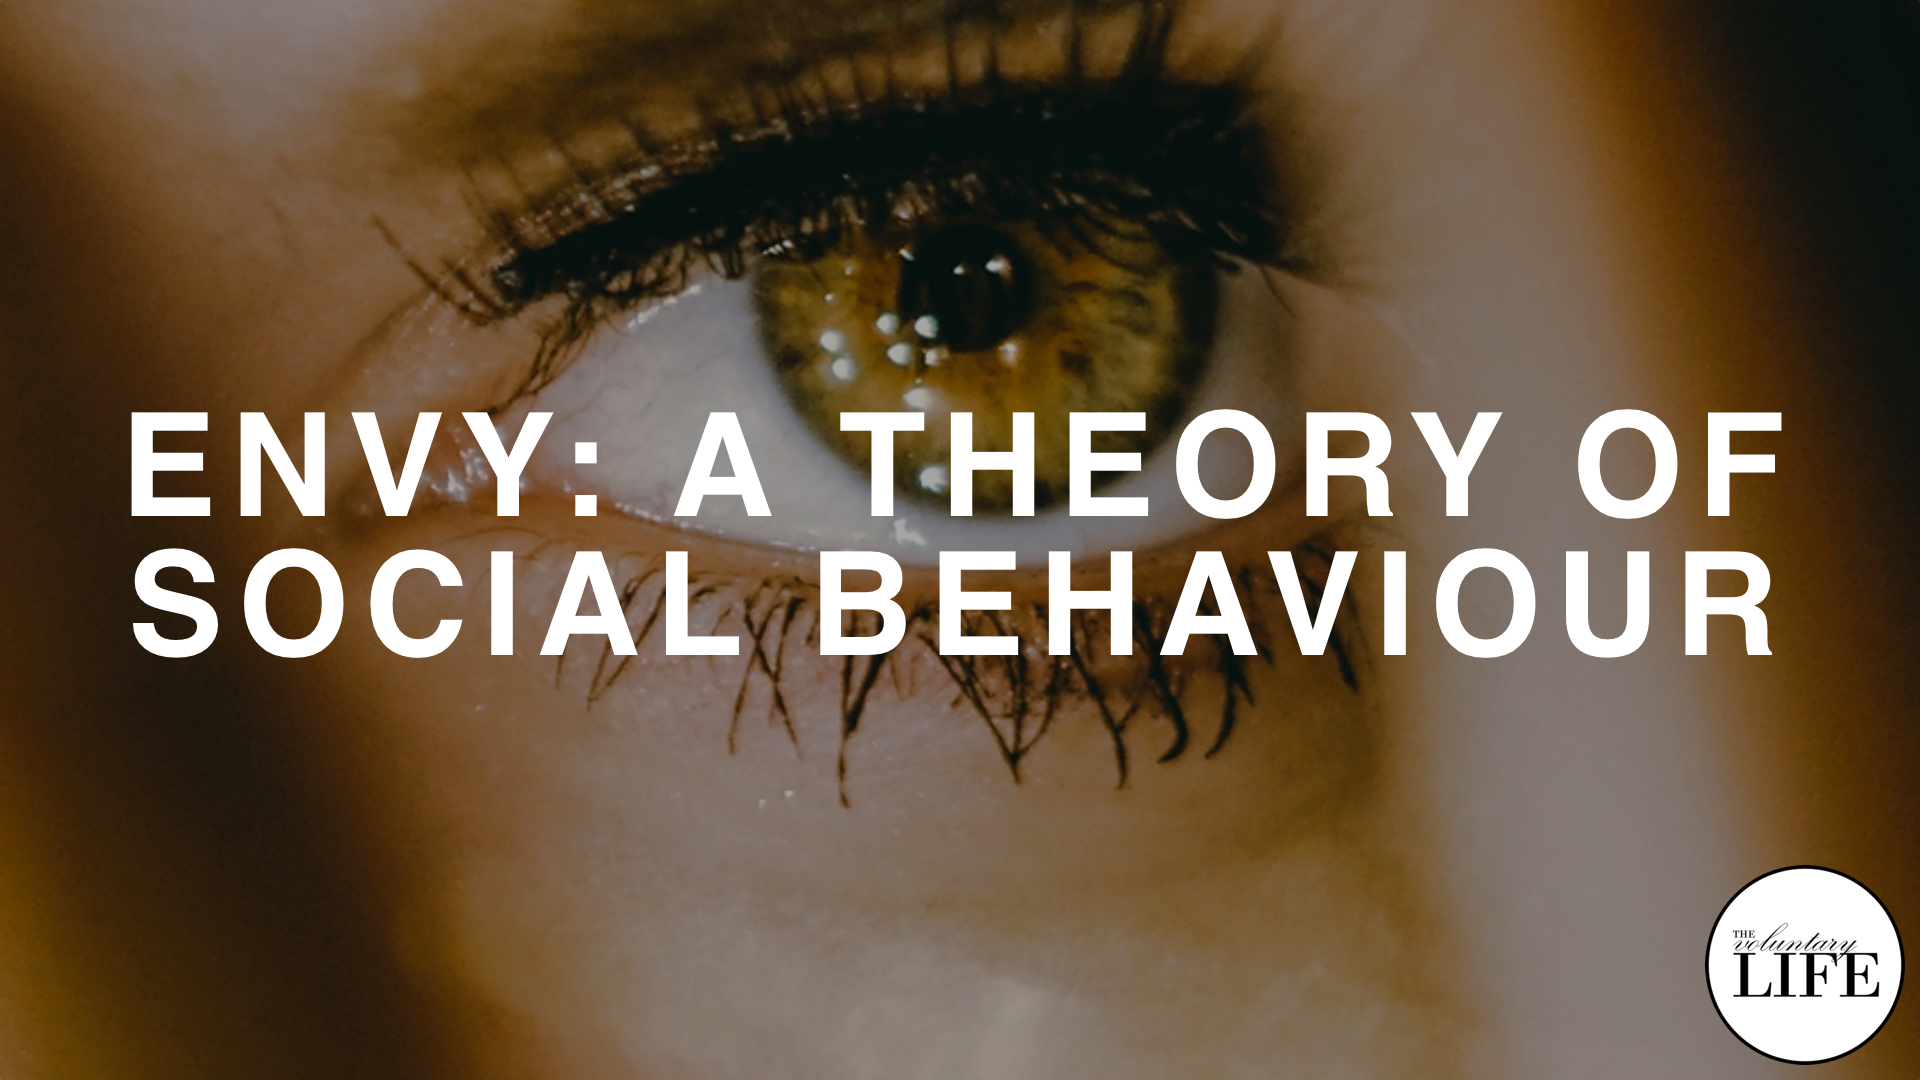 189 Envy: A Theory Of Social Behaviour By Helmut Schoek